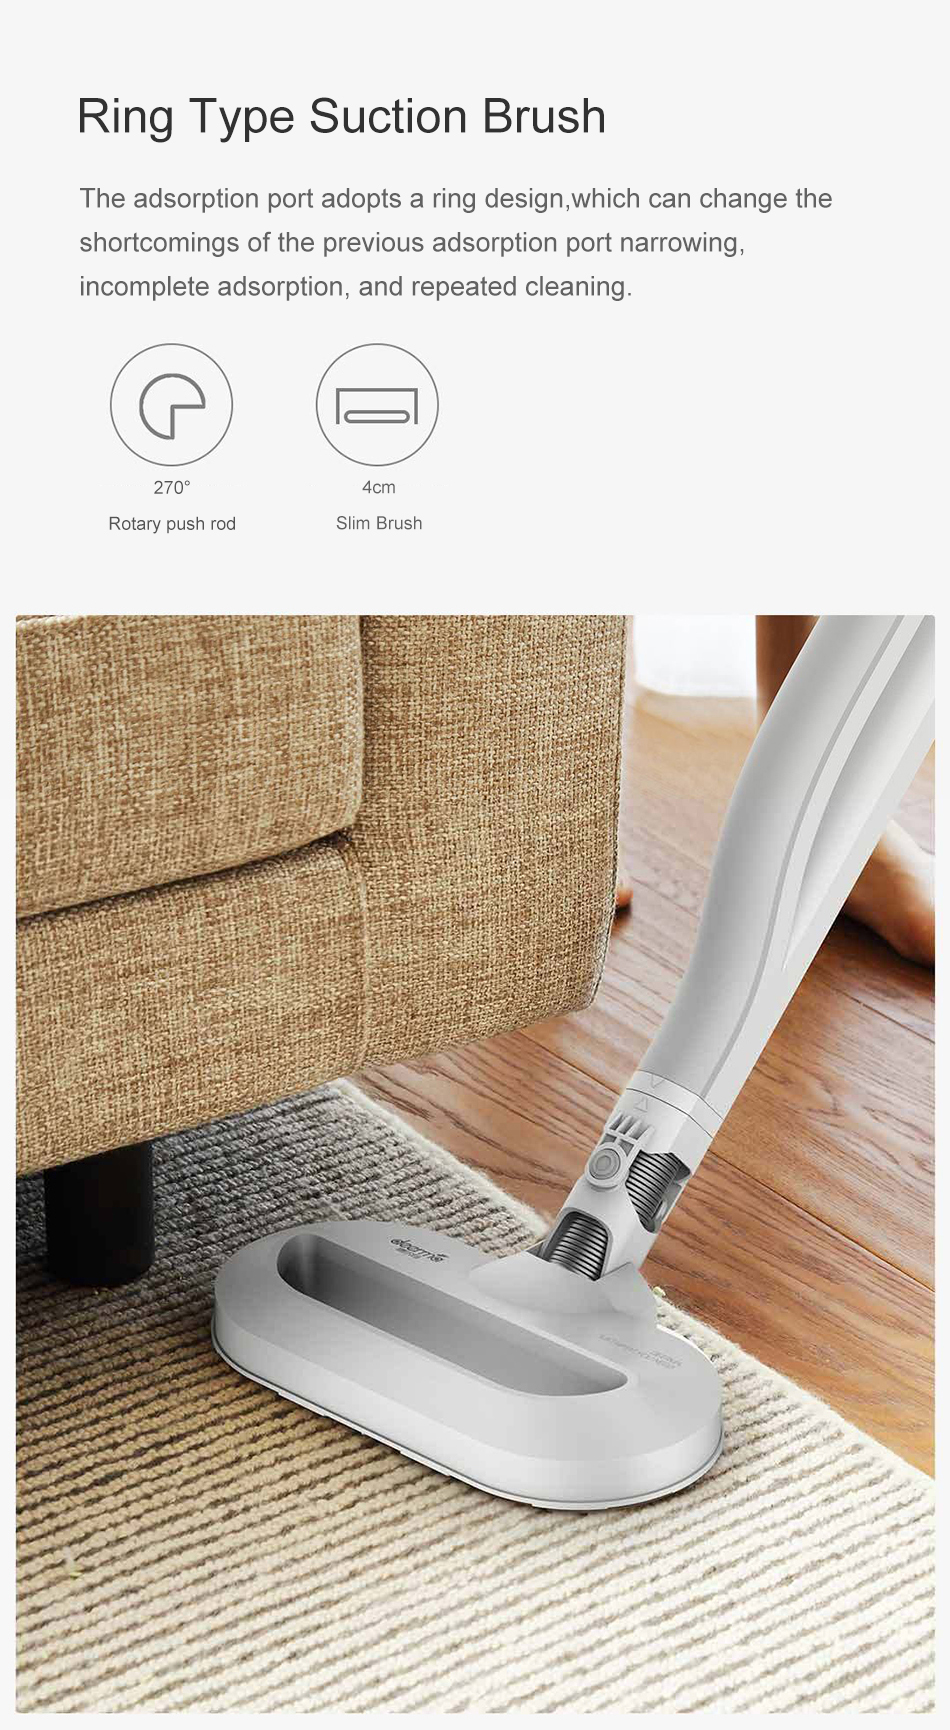 Deerma DX800S Back-carrying Stick Vacuum Handheld Cleaner Handheld Dust Collector from XIAOMI Youpin